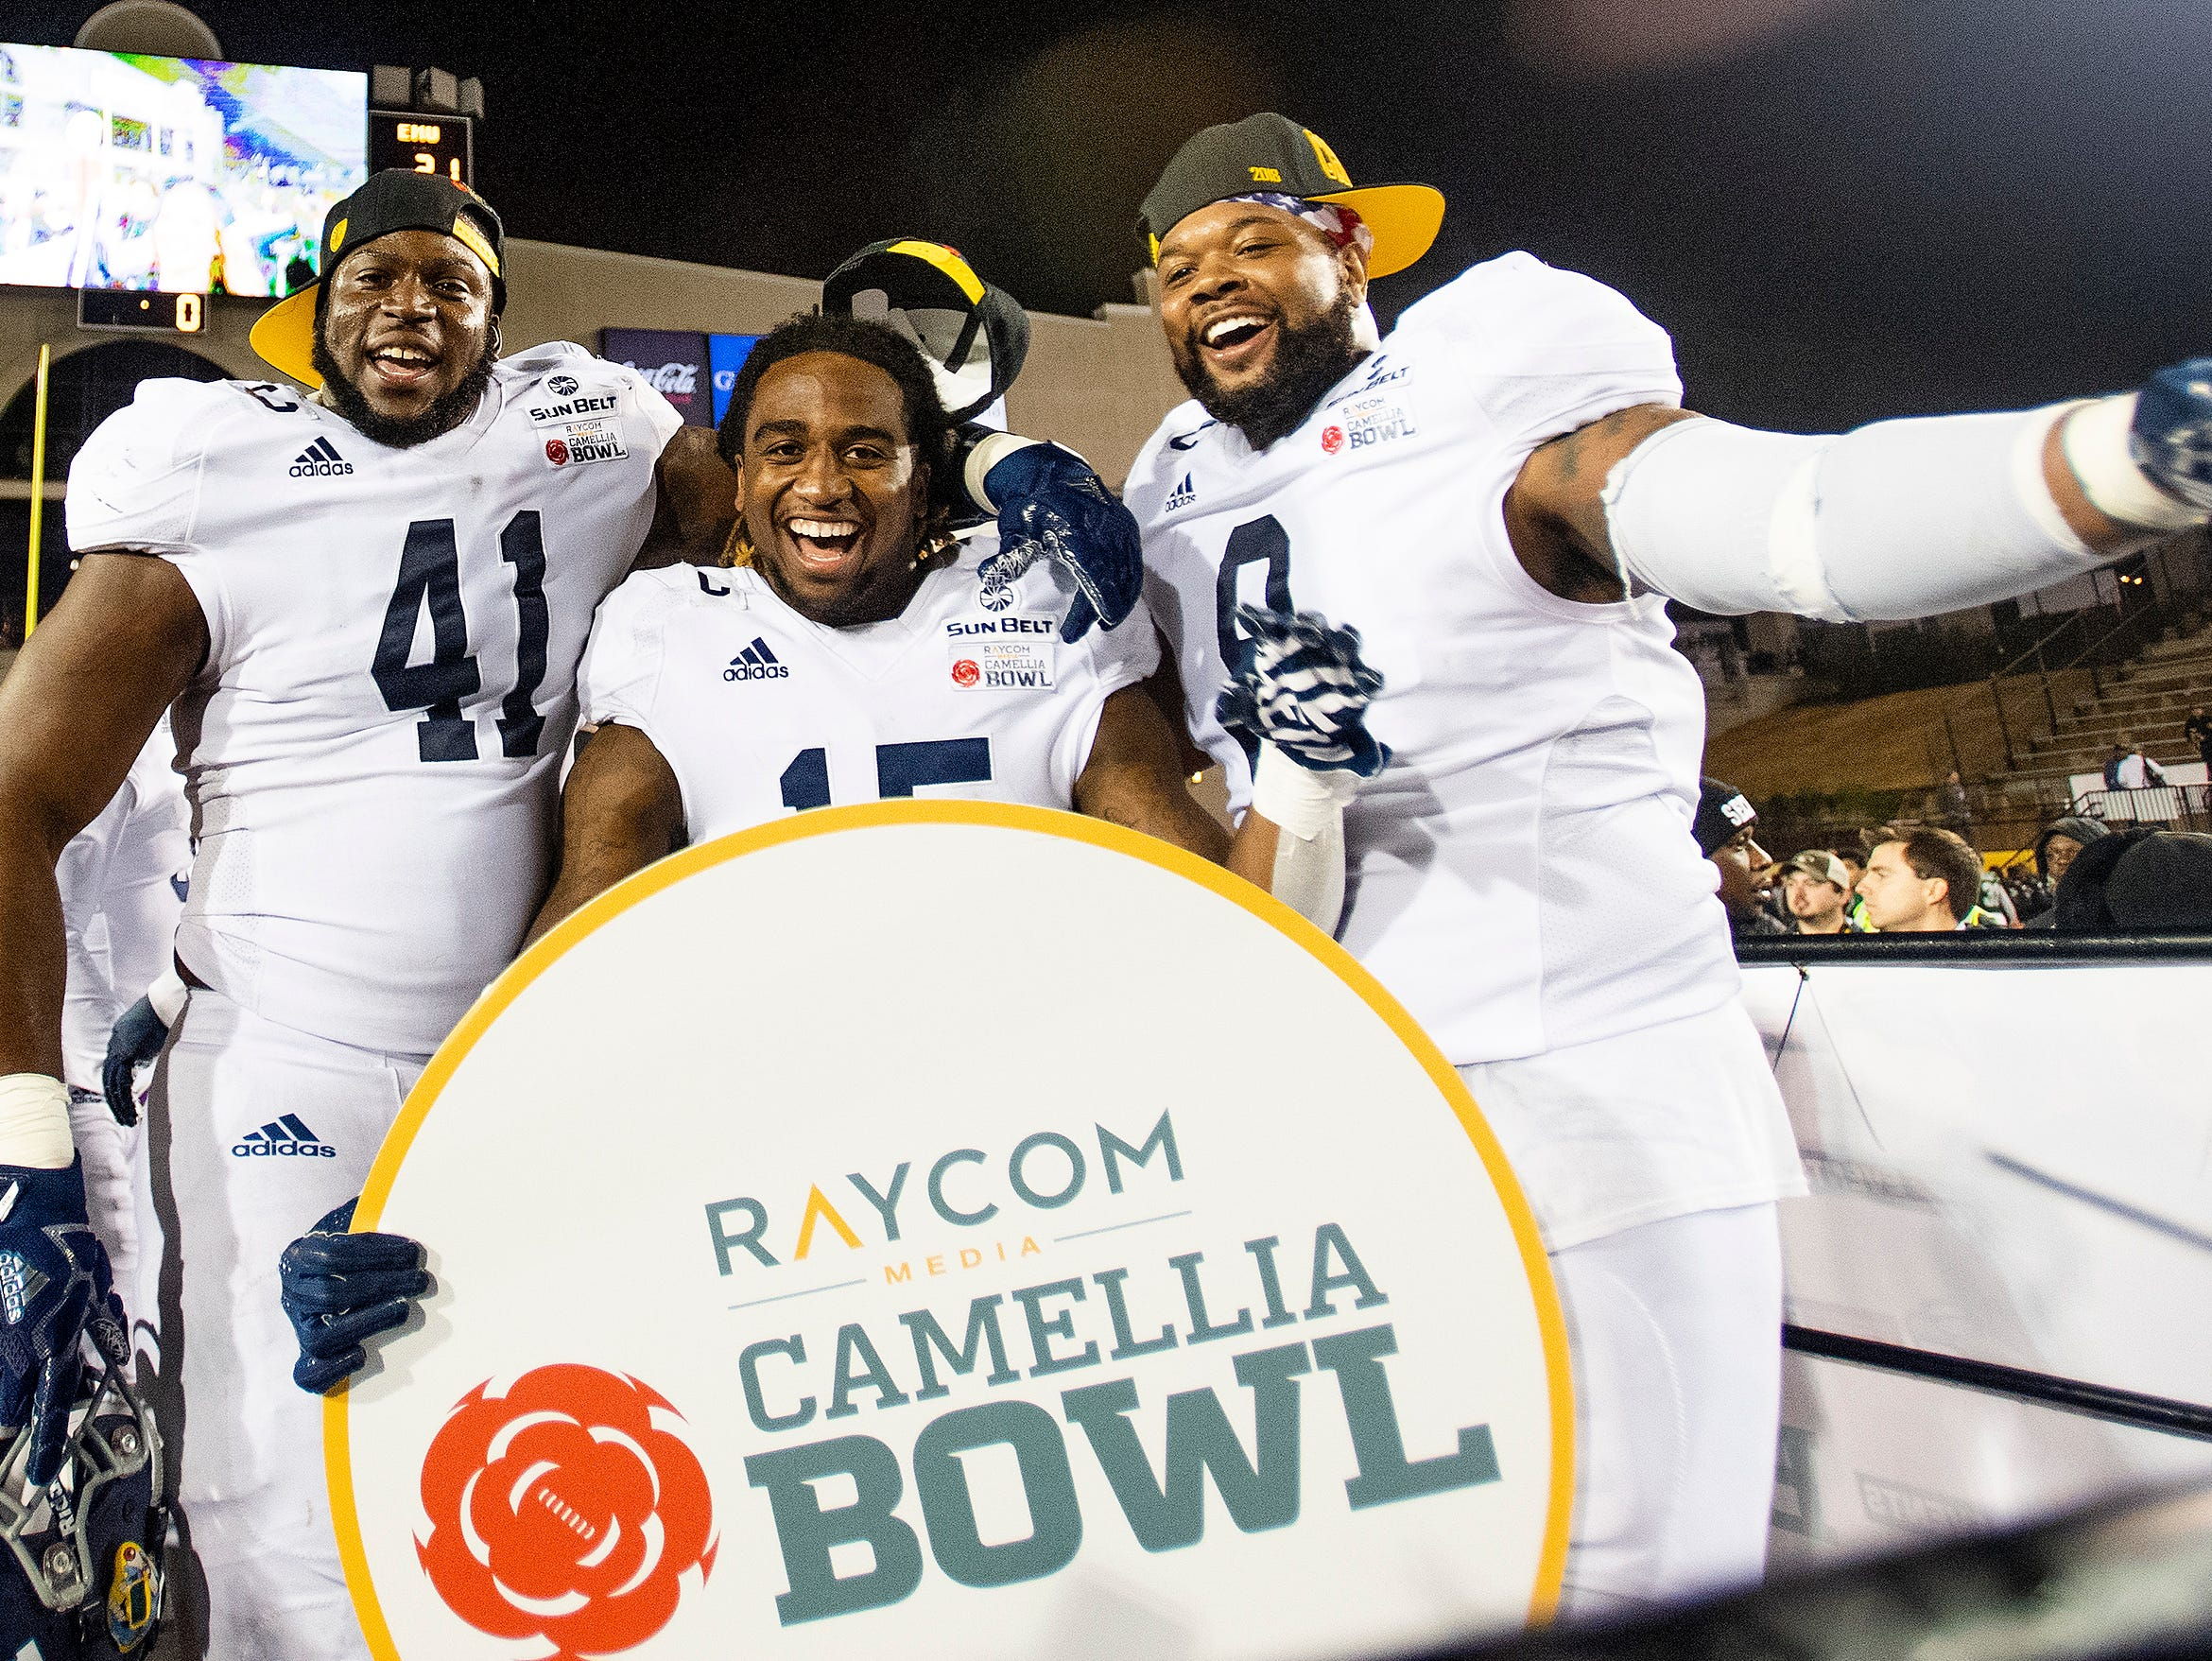 Georgia Southern defensive end Deshon Cooper (41) , ]\ running back Monteo Garrett (15) and defensive end Logan Hunt (9) celebrate after defeating Eastern Michigan in the Raycom Media  Camellia Bowl held at Cramton Bowl in Montgomery, Ala., on Saturday December 15, 2018.